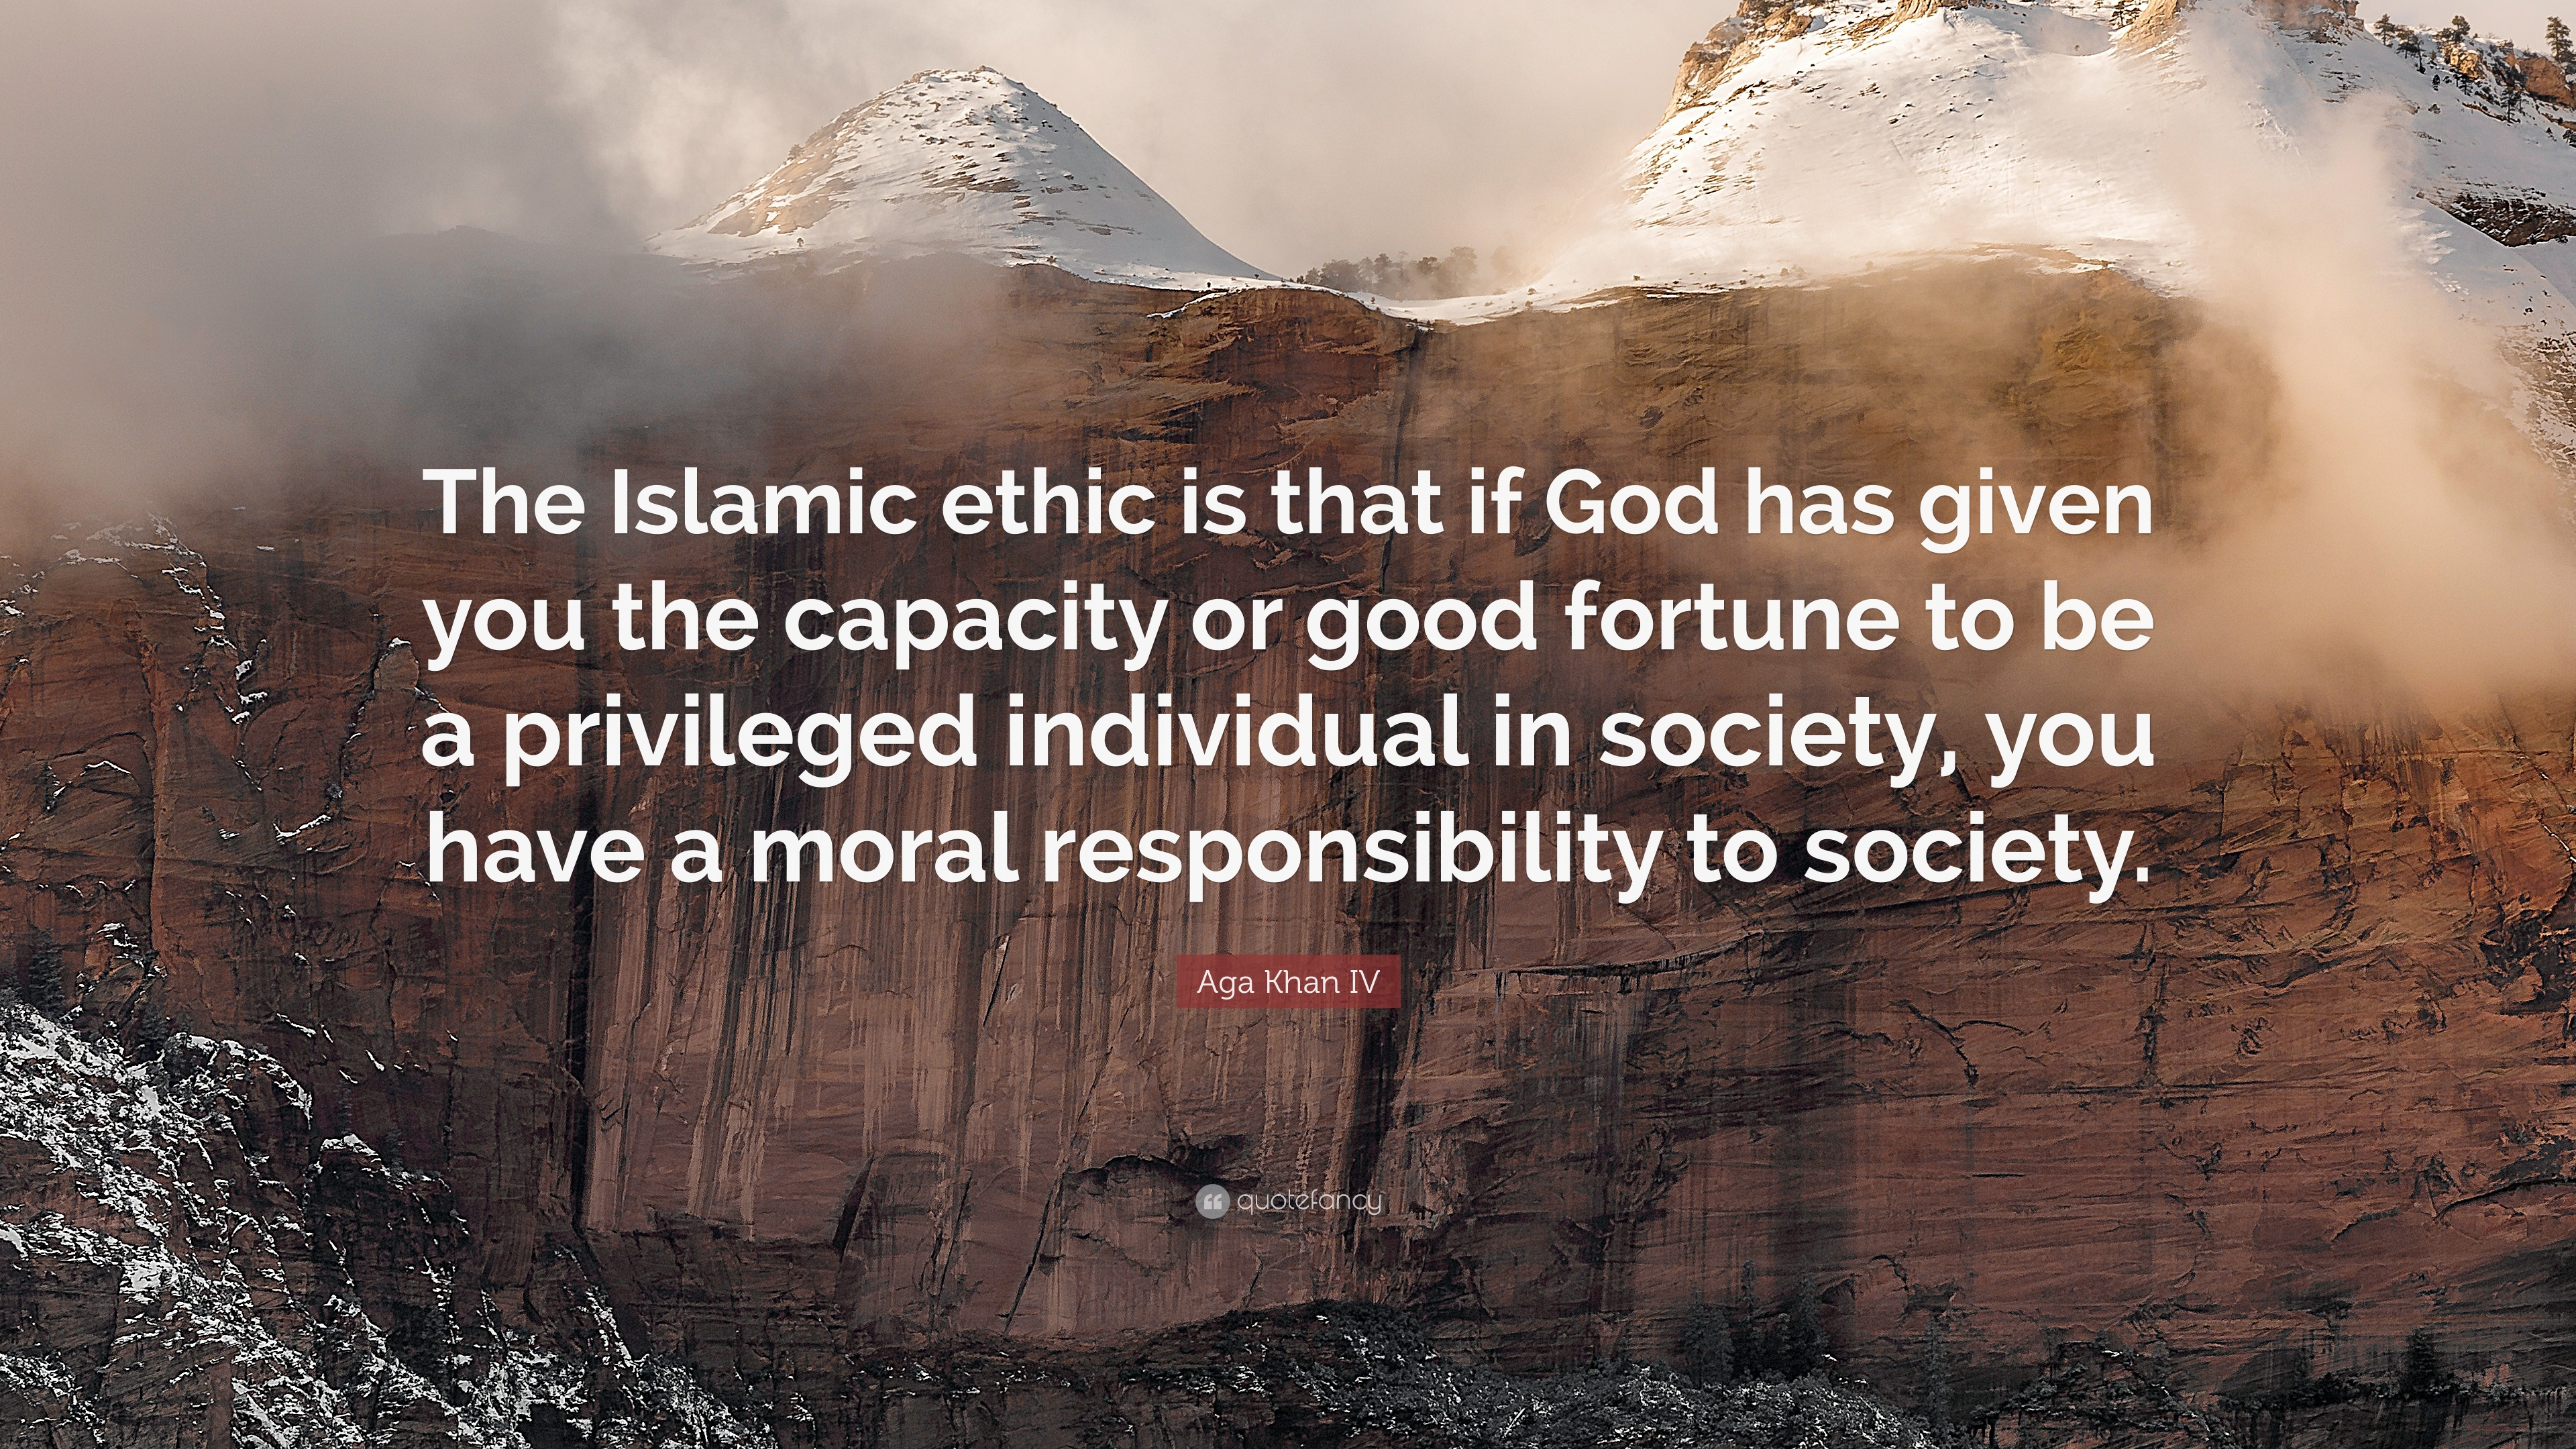 Islam and its moral responsibility